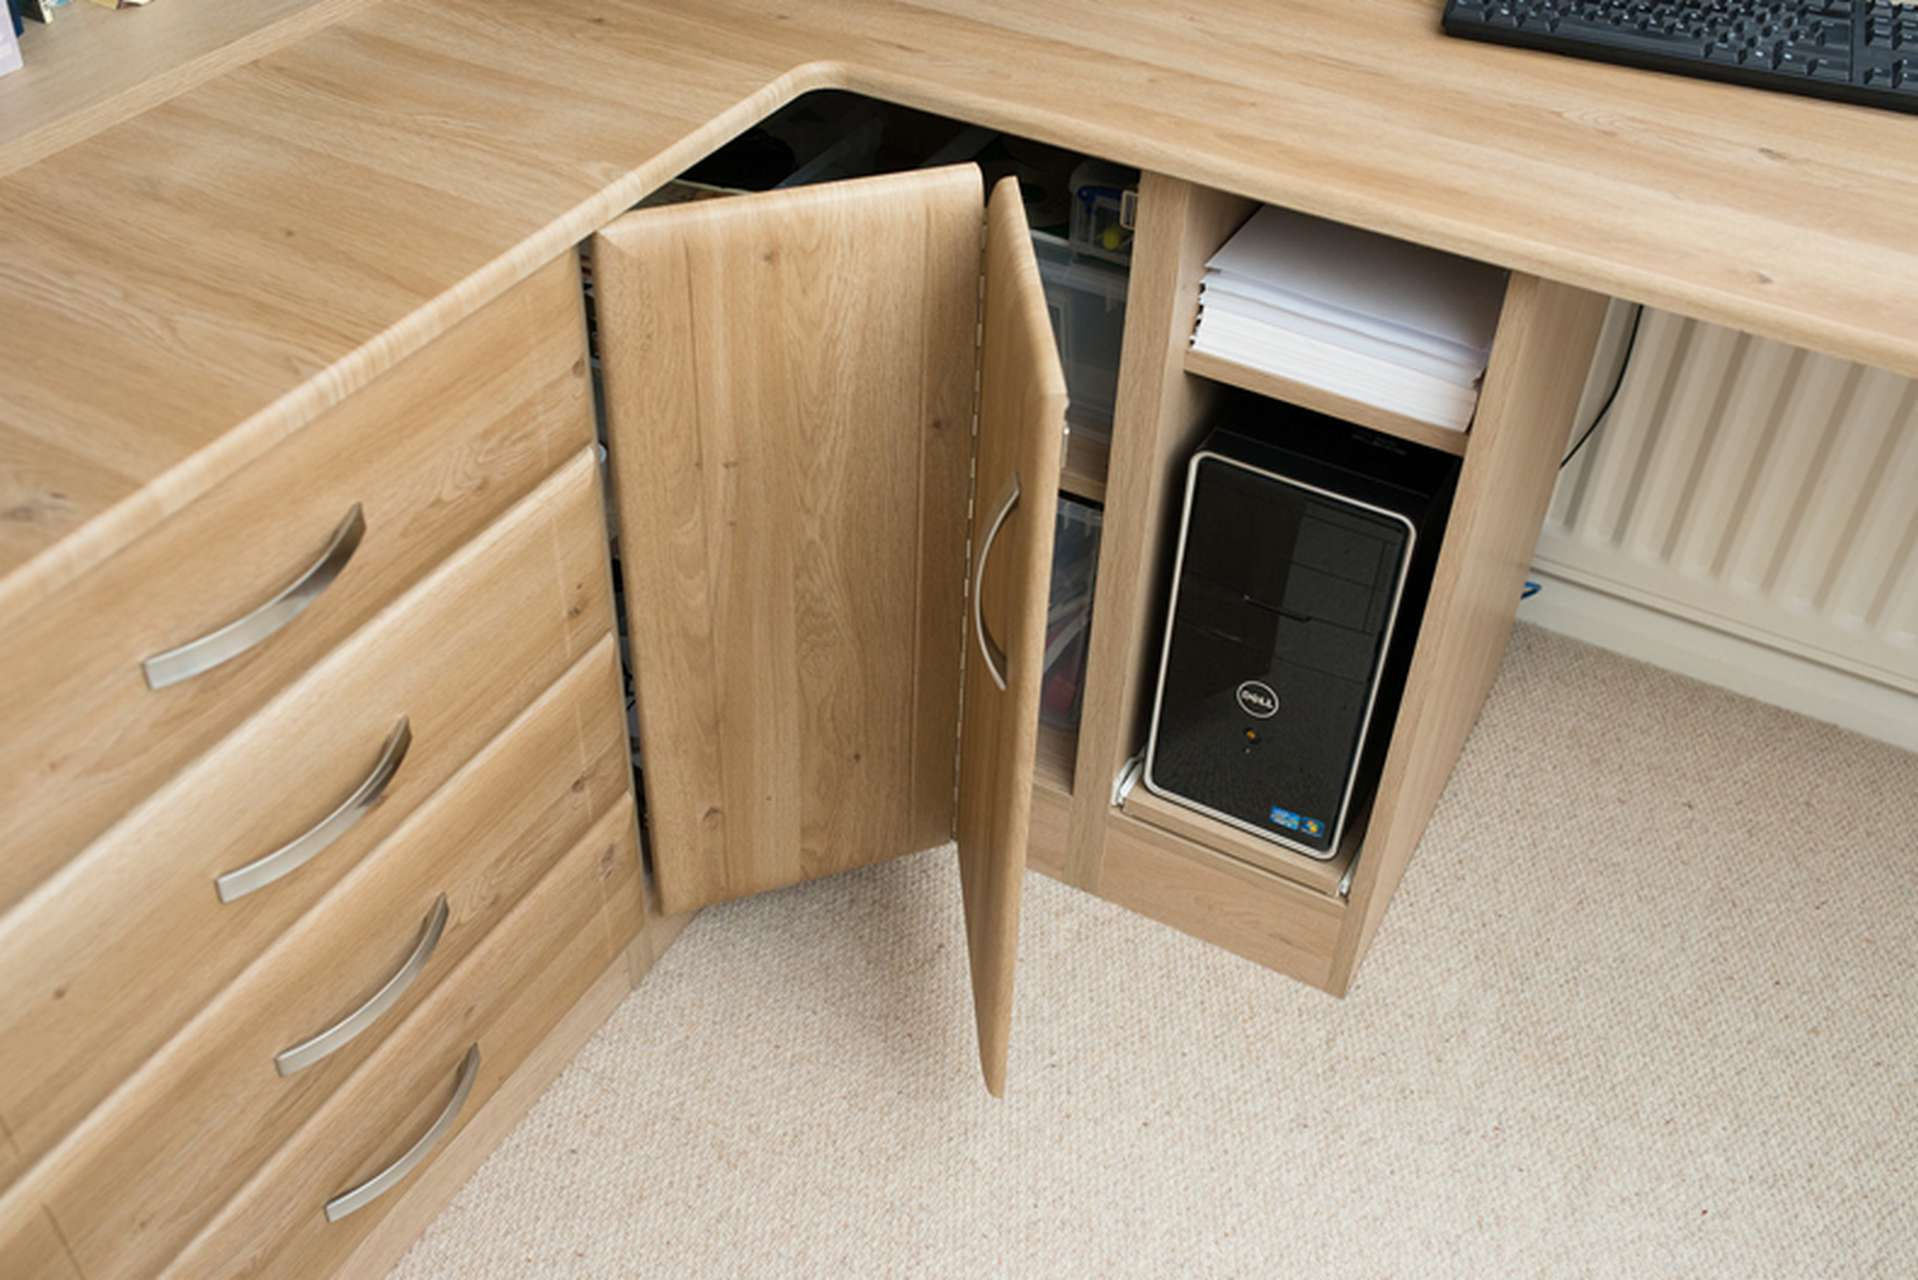 Computer storage and corner cupboard